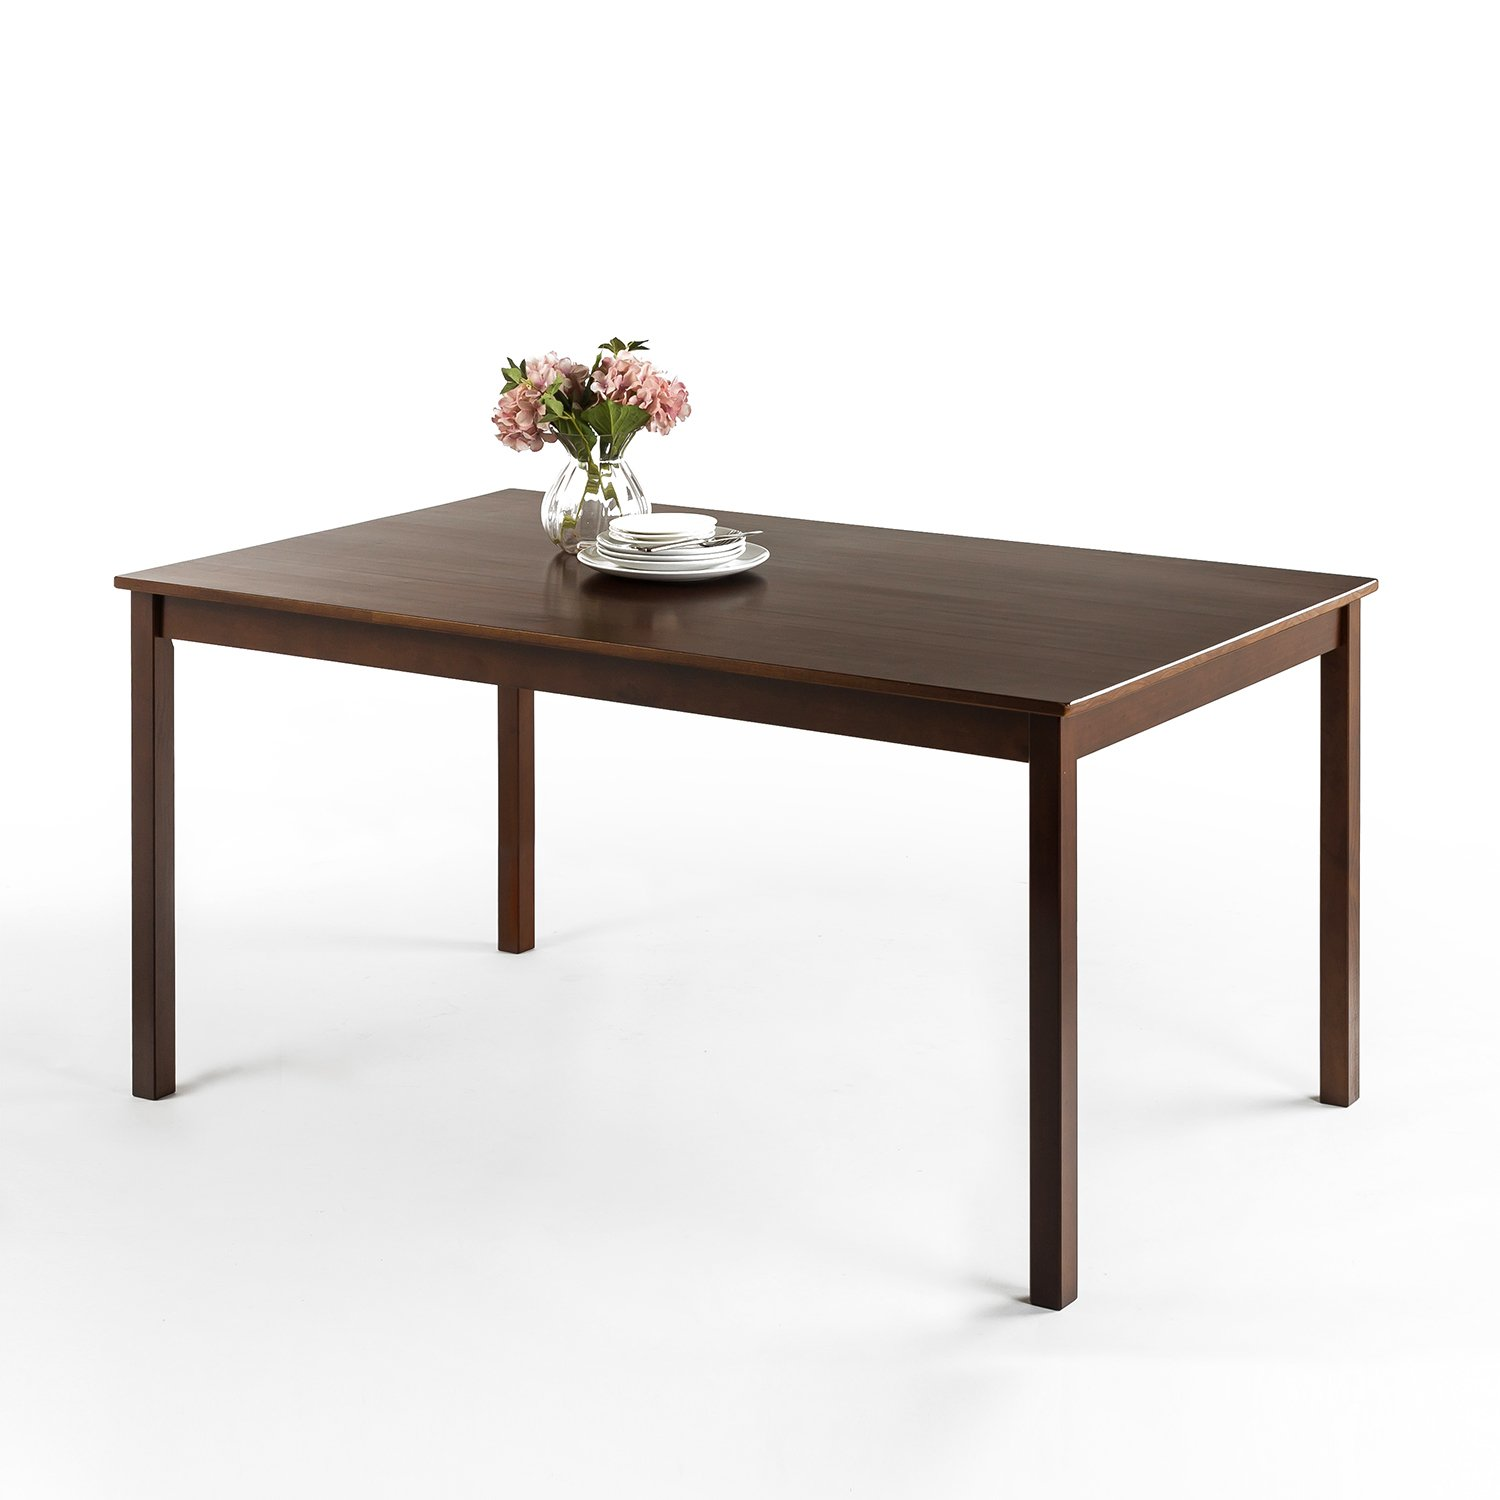 Zinus Juliet Espresso Wood Large Dining Table / Table Only by Zinus